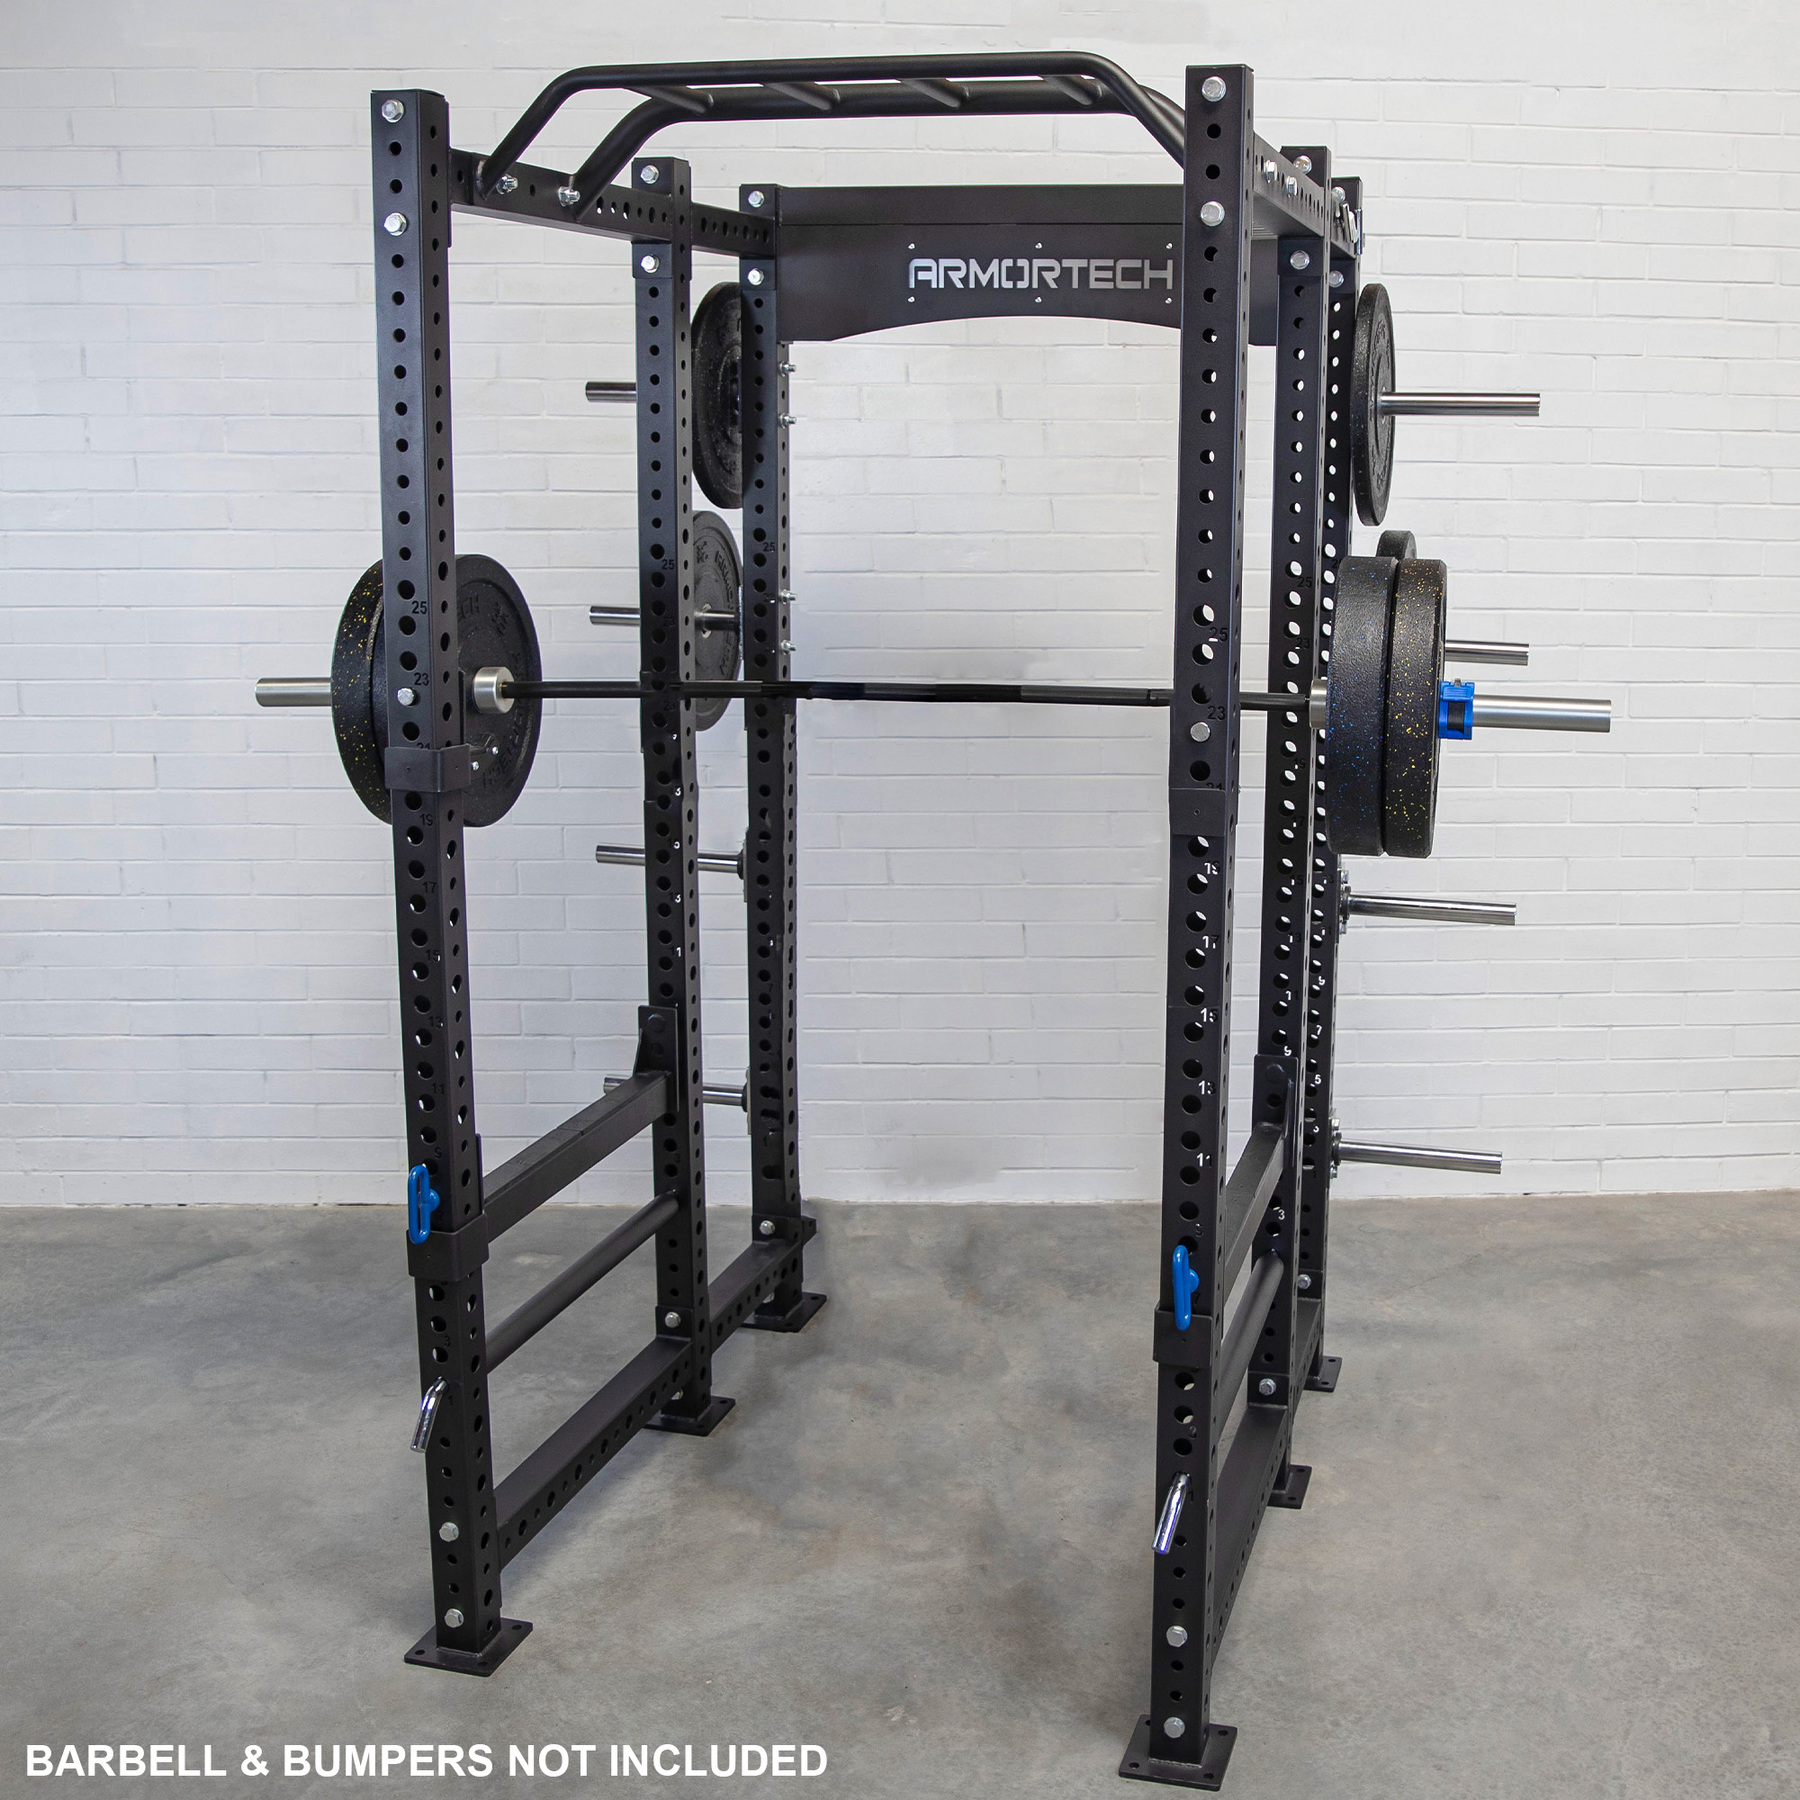 Armortech V2 Competition Power Cage